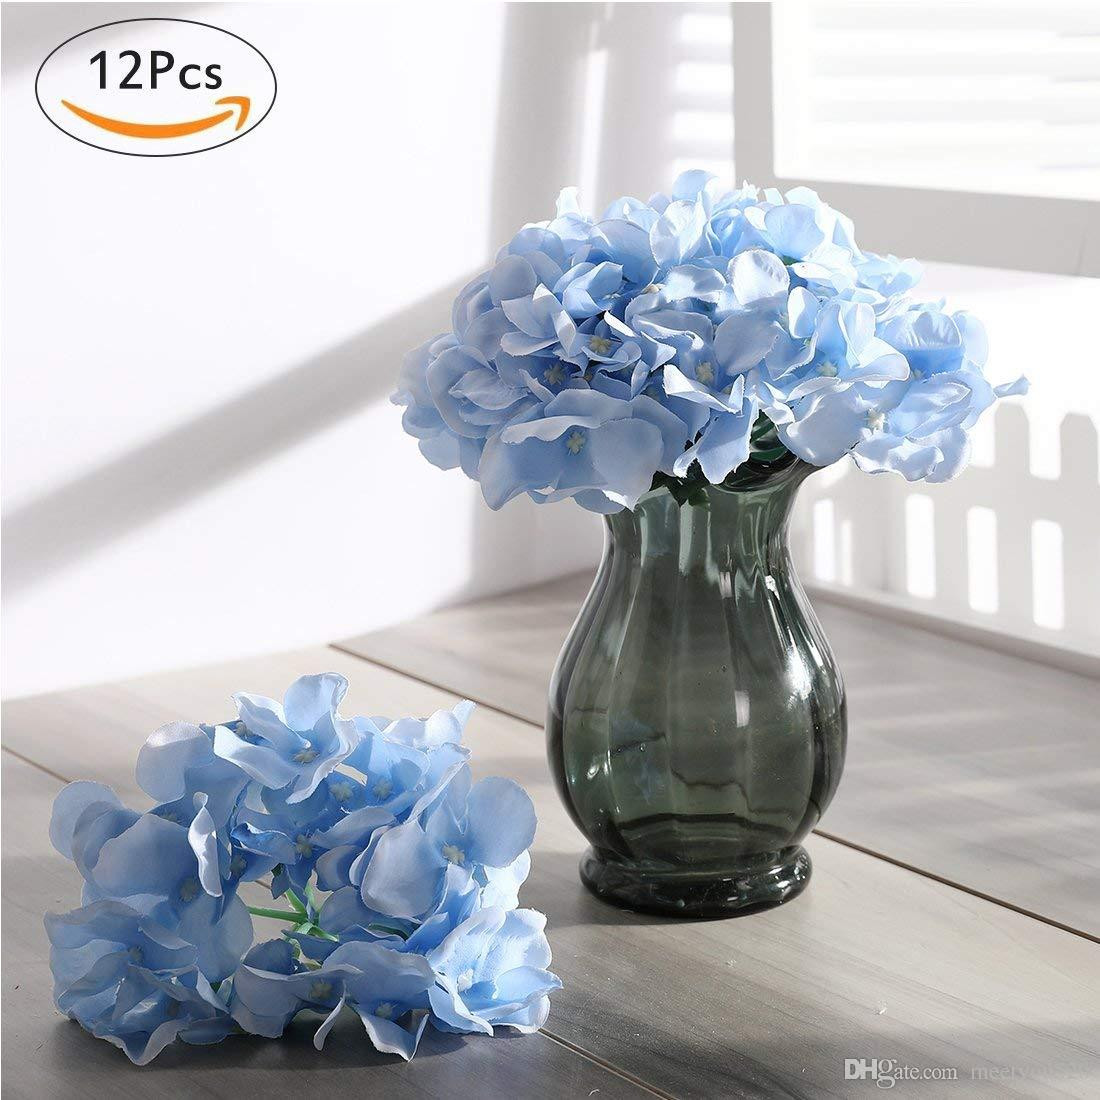 vase with hydrangeas of 2018 blooming silk hydrangea flower heads for diy bouquets wedding inside 2018 blooming silk hydrangea flower heads for diy bouquets wedding centerpieces home decor sky blue from meetyou520 11 94 dhgate com